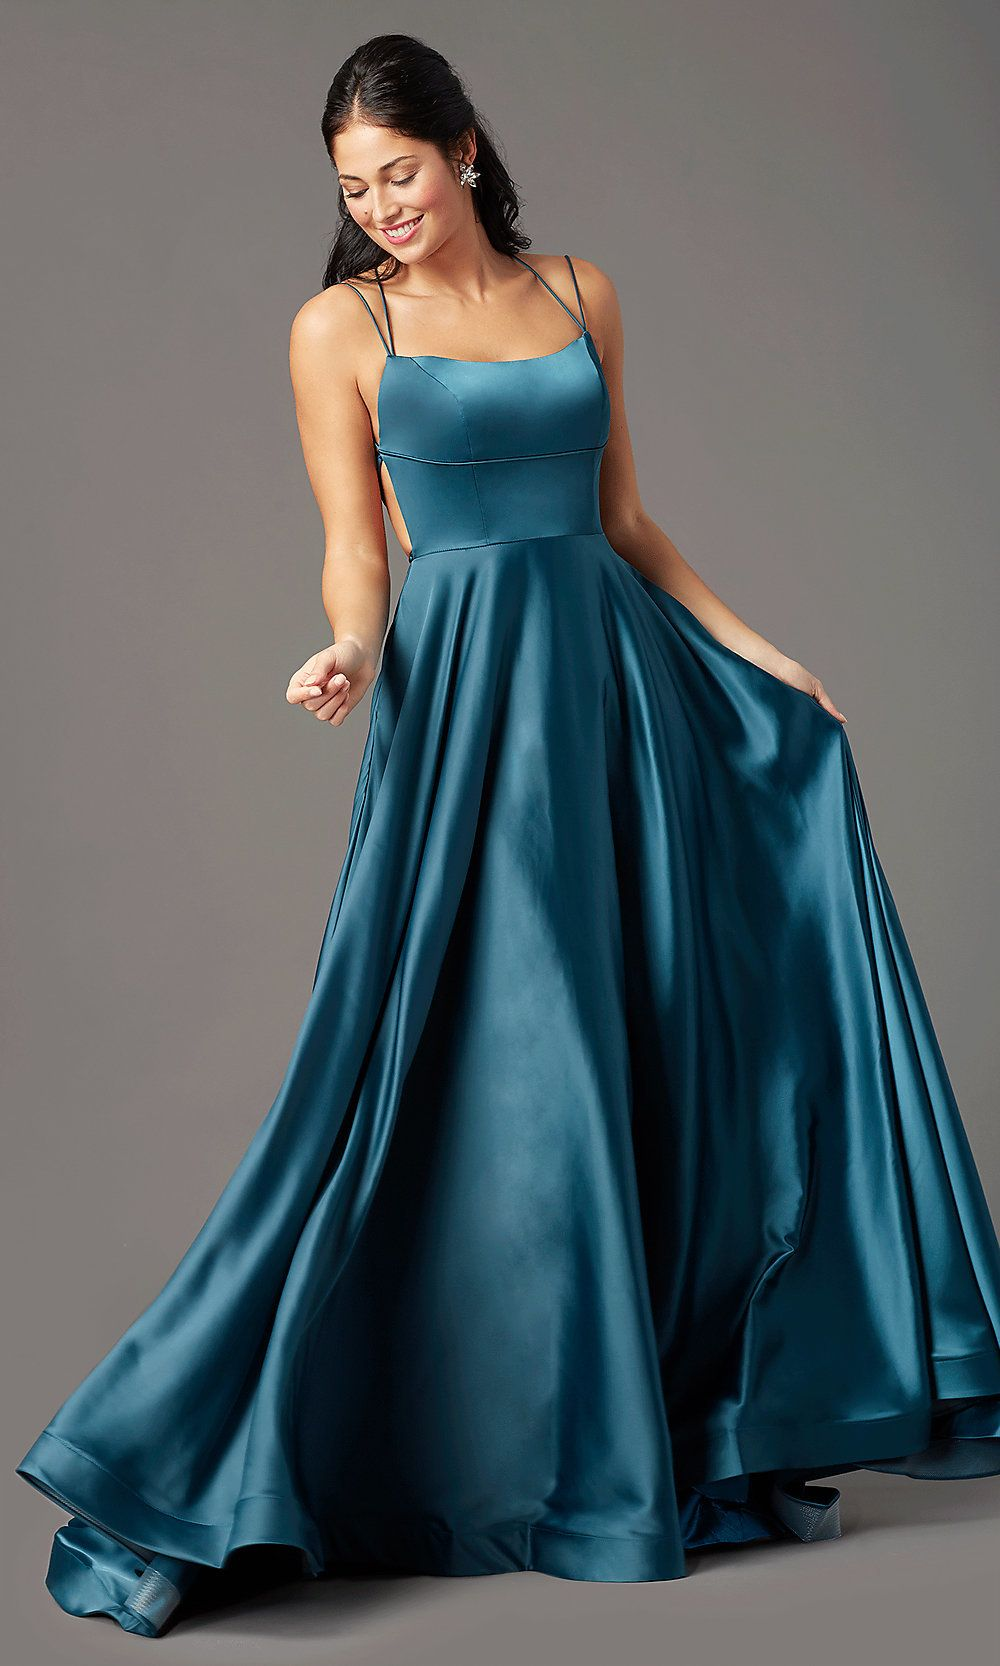 Square Neck Long Formal Prom Dress By Promgirl Formal Prom Dresses Long Pretty Prom Dresses Cute Prom Dresses [ 1666 x 1000 Pixel ]